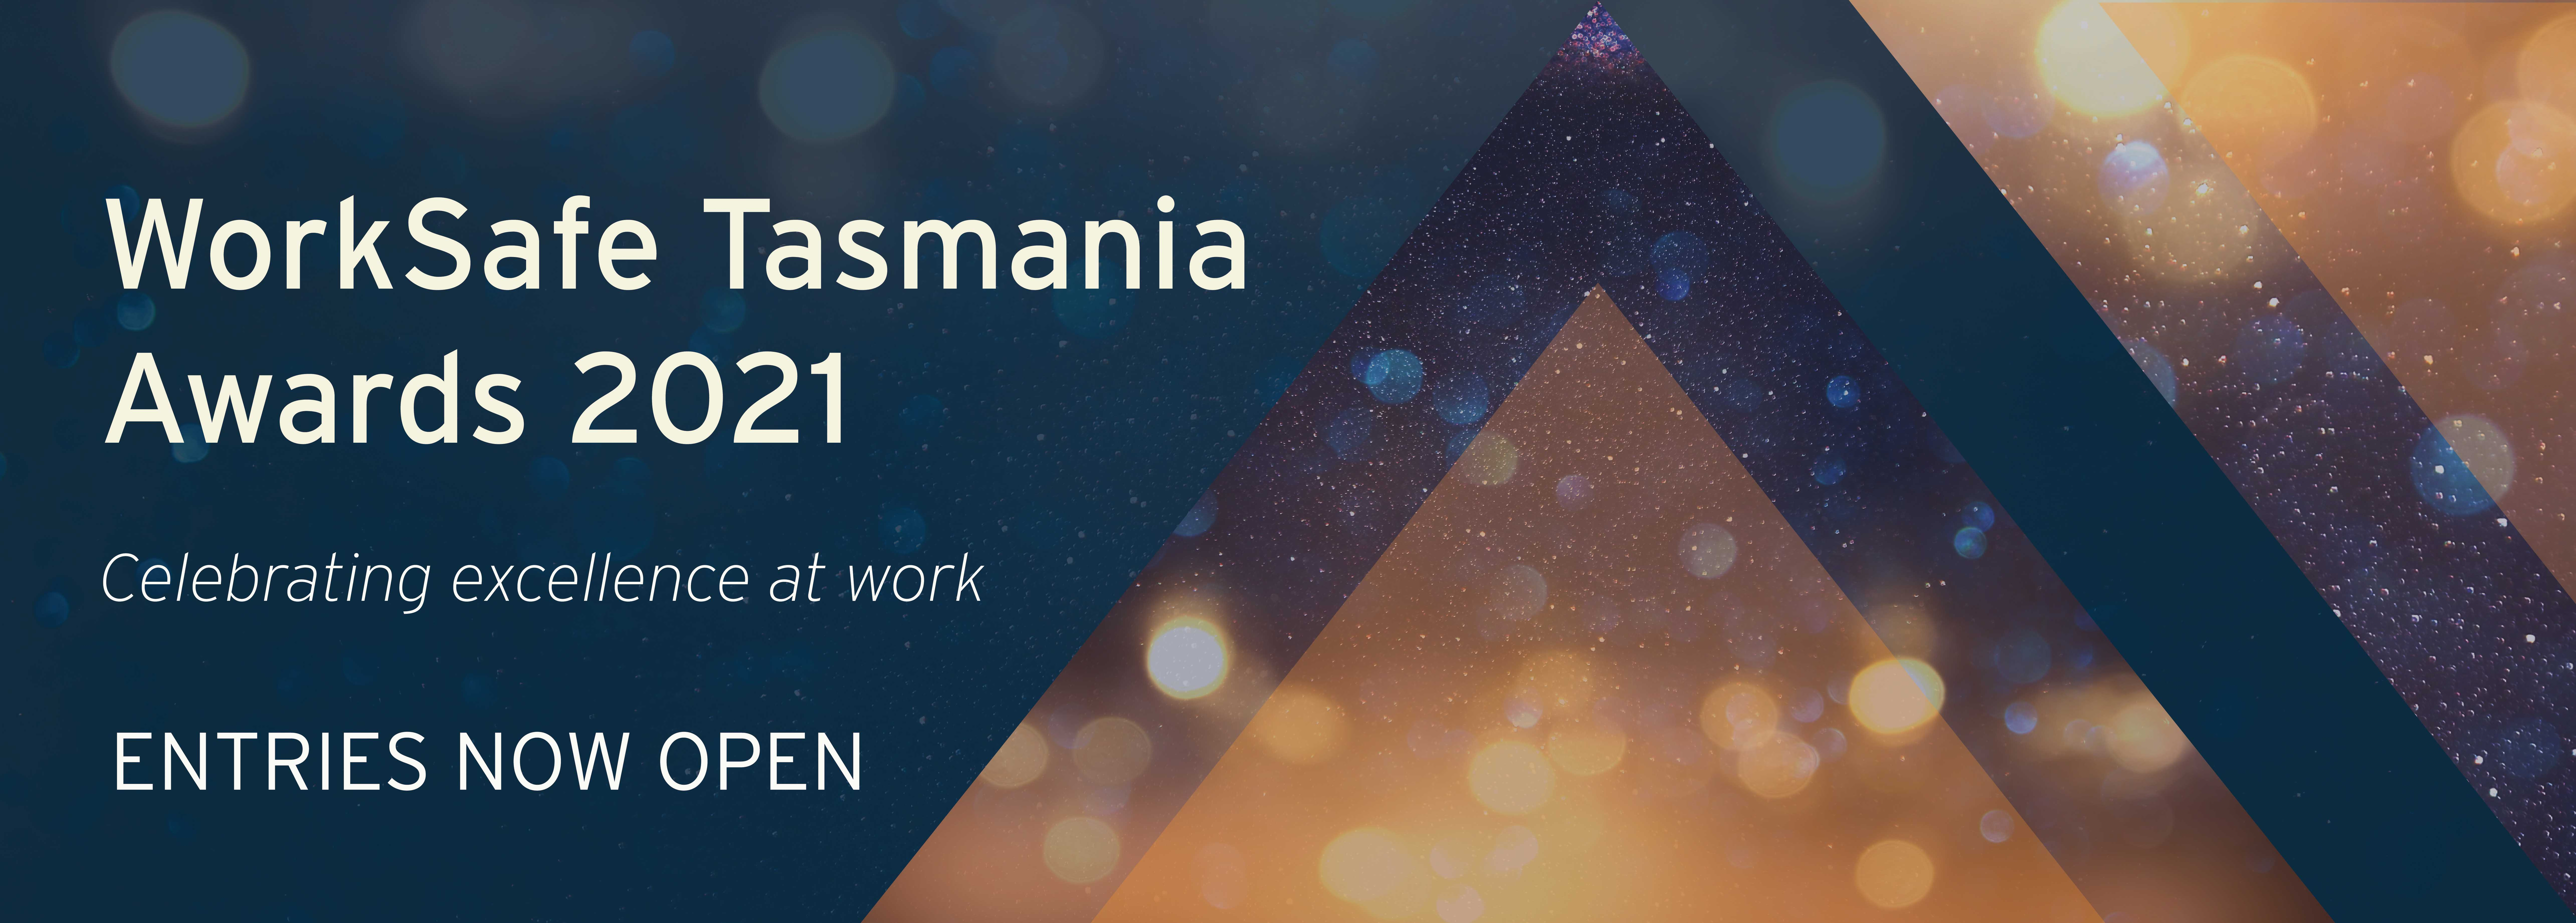 2021 WorkSafe Tasmania Awards